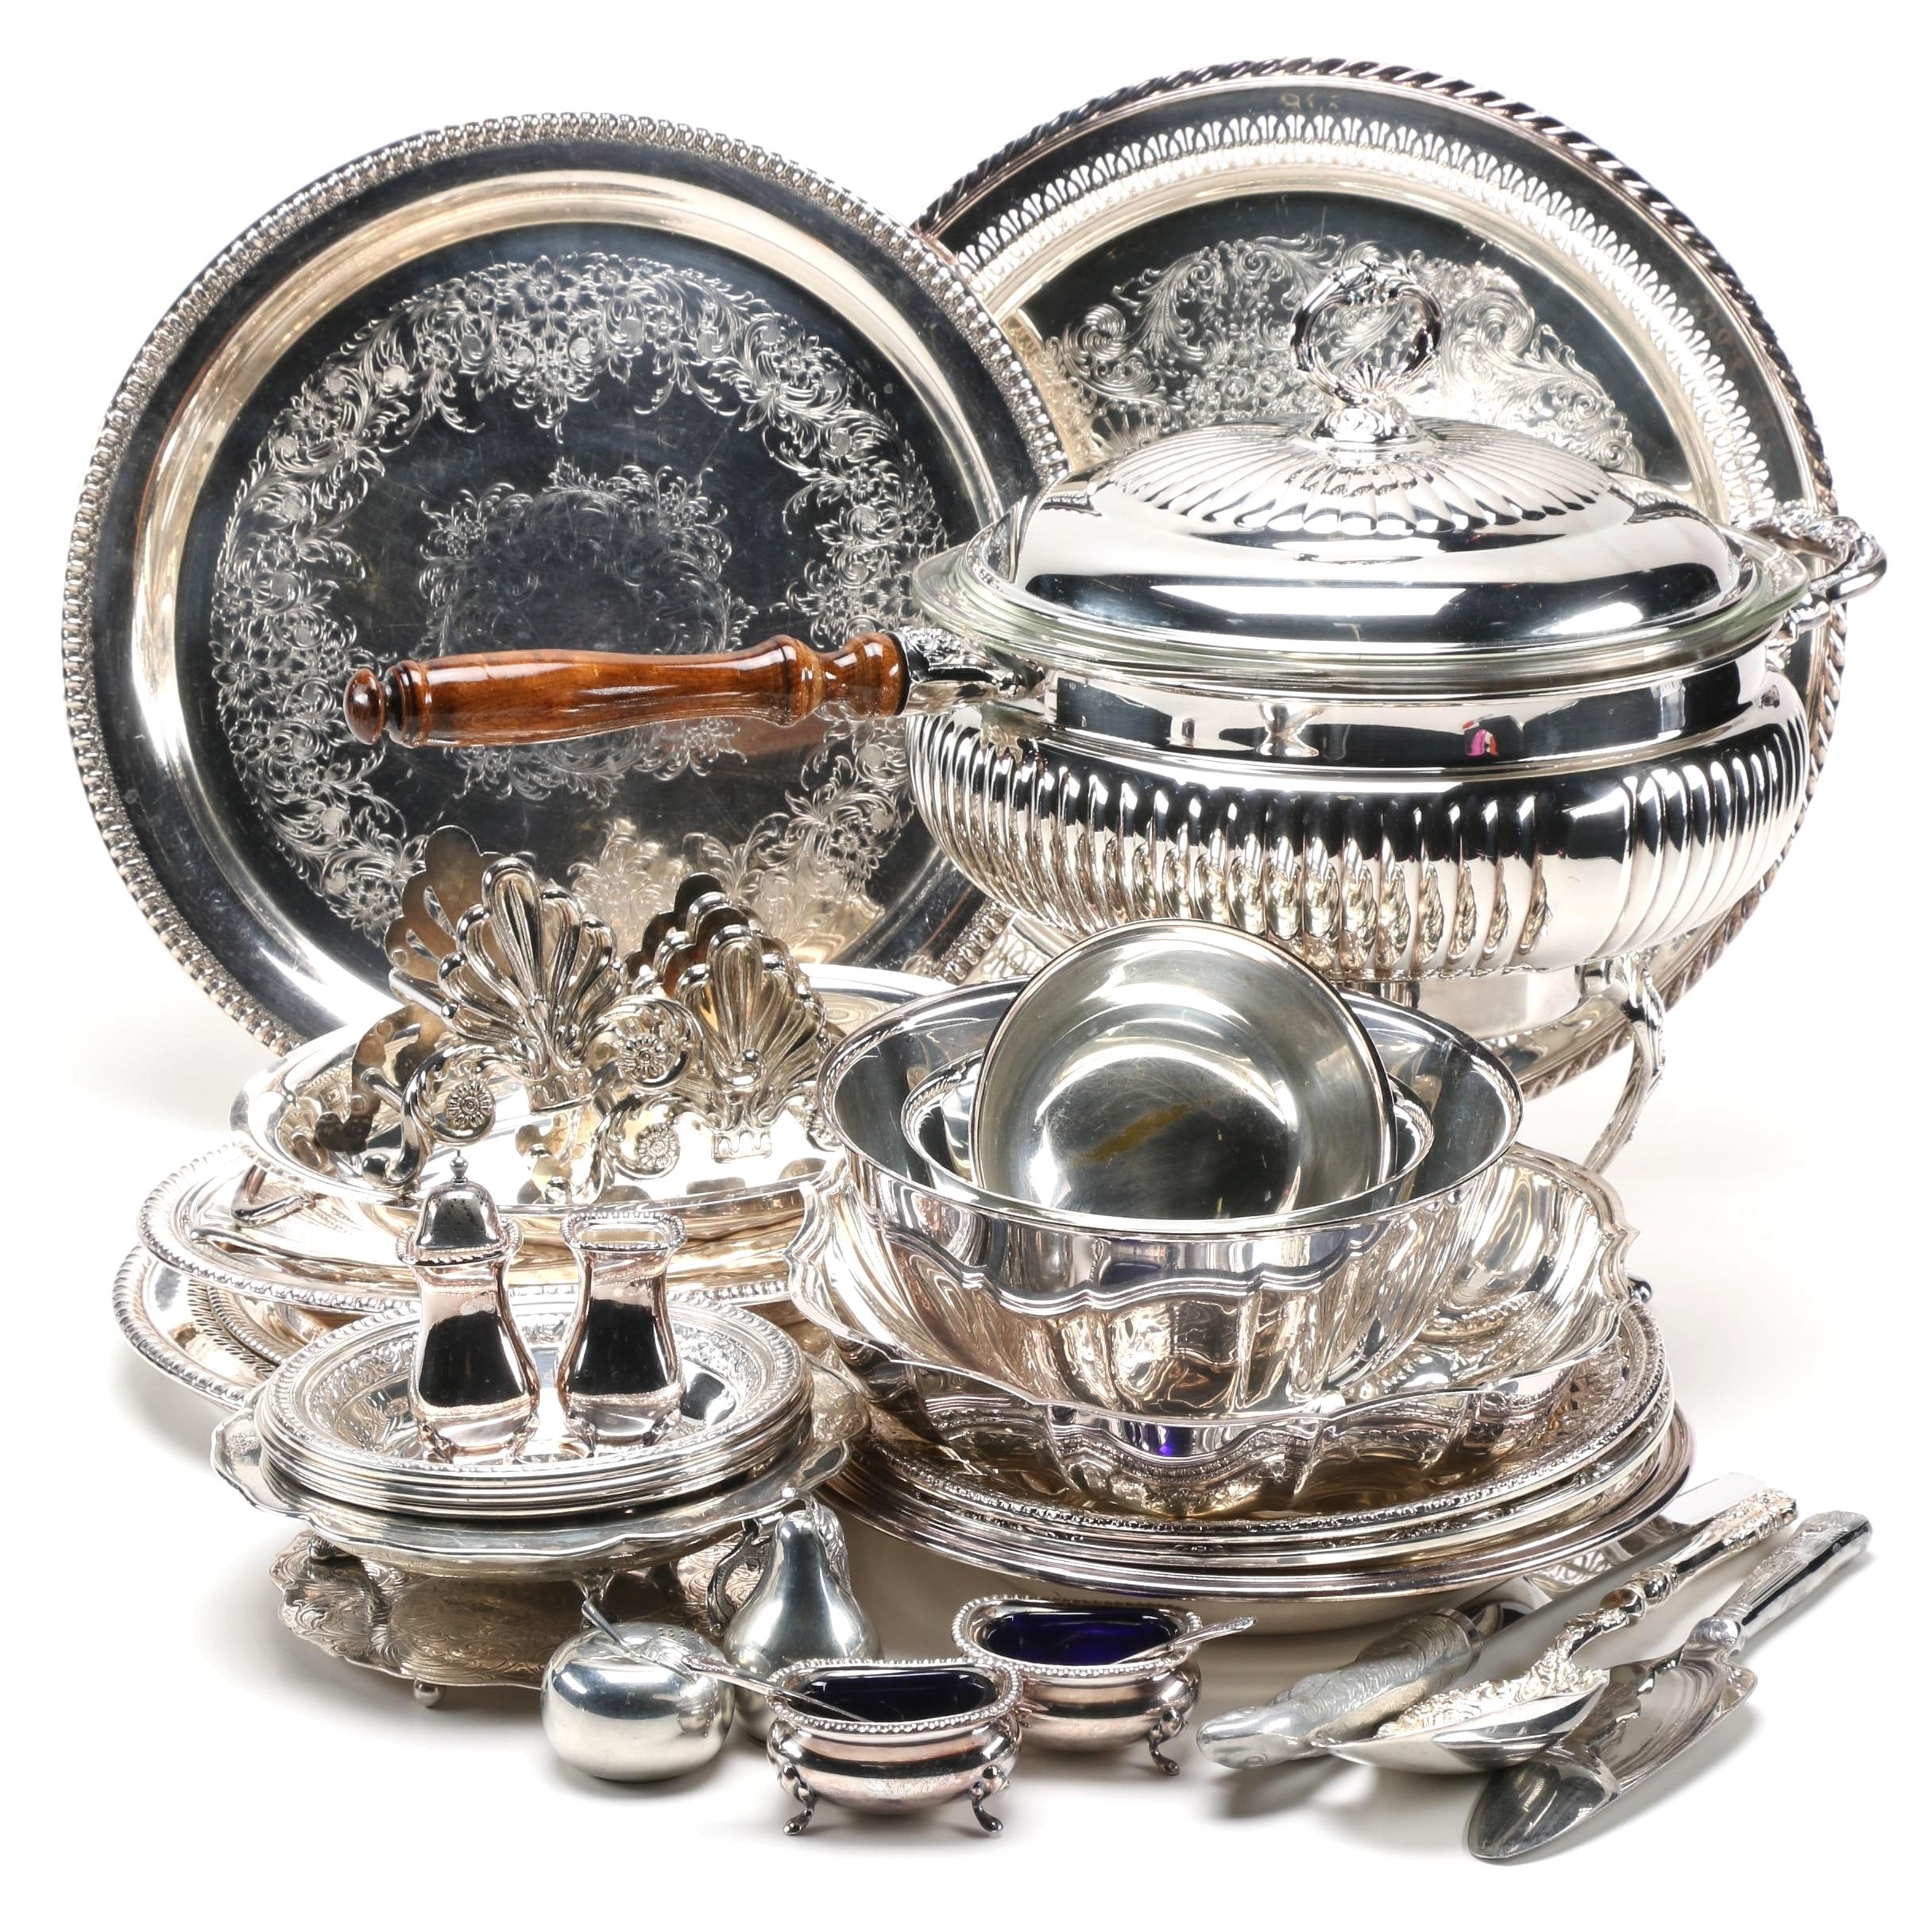 Silver Plate Servingware Featuring Reed & Barton